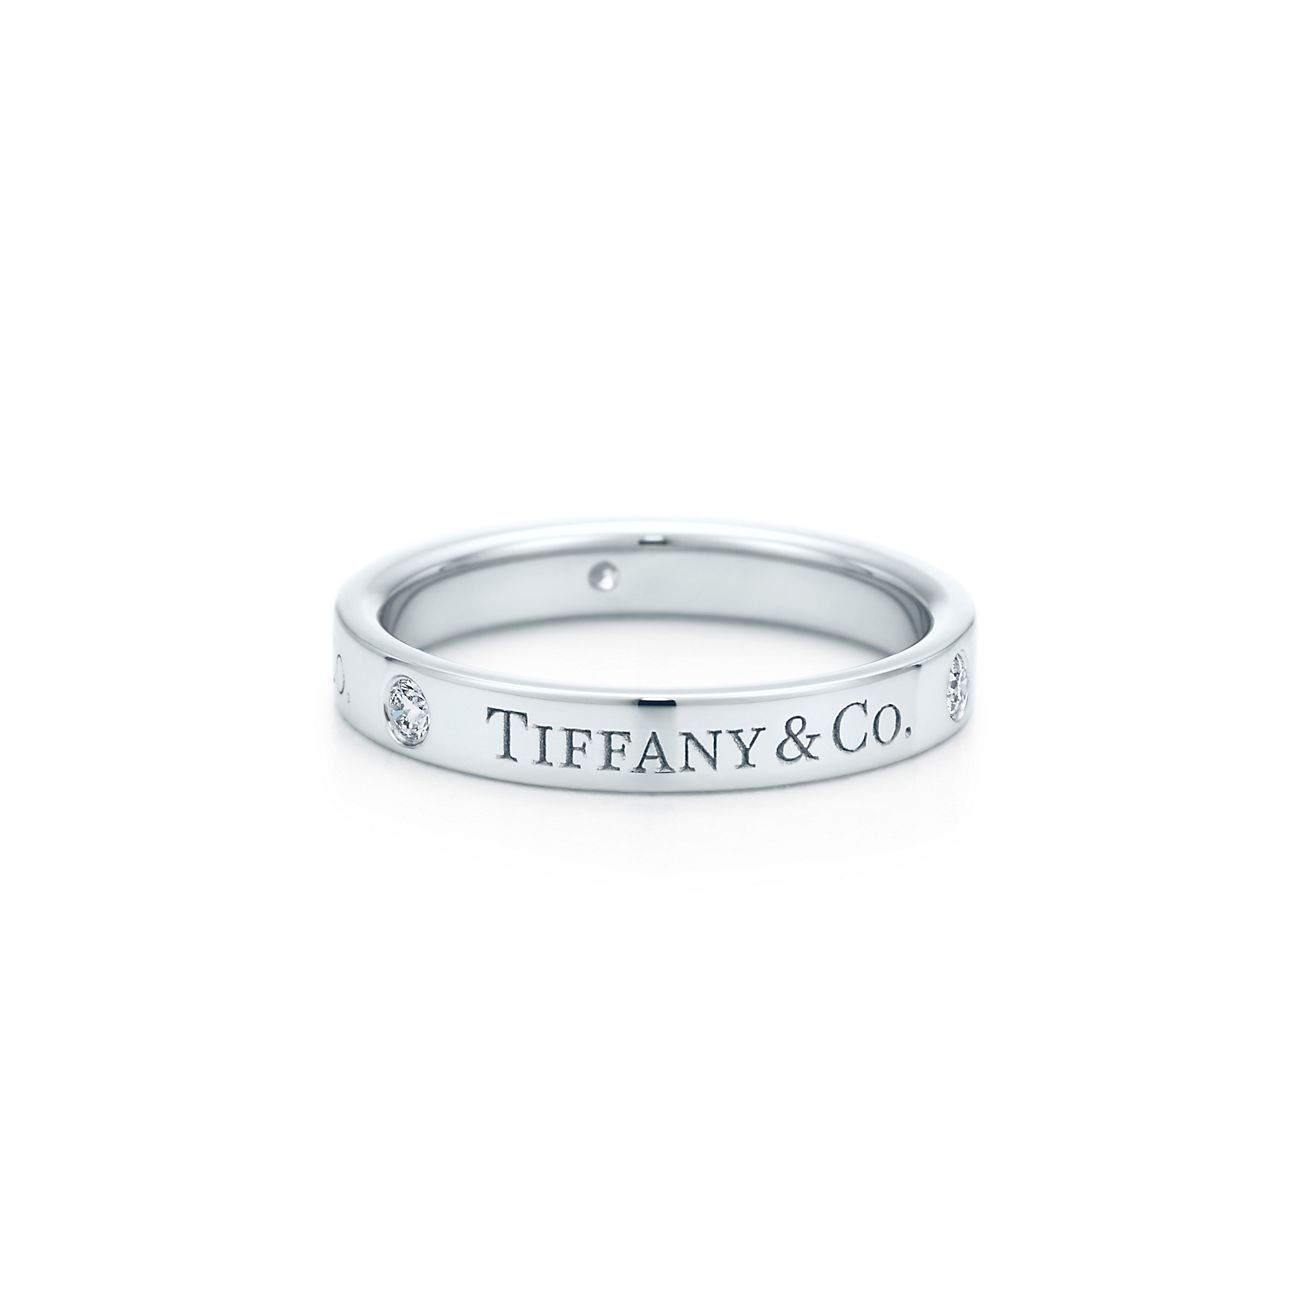 Tiffany & Co Anneau De Bande En Platine De Rubis, De 3 Mm De Large - Taille 9 1/2 Tiffany & Co.